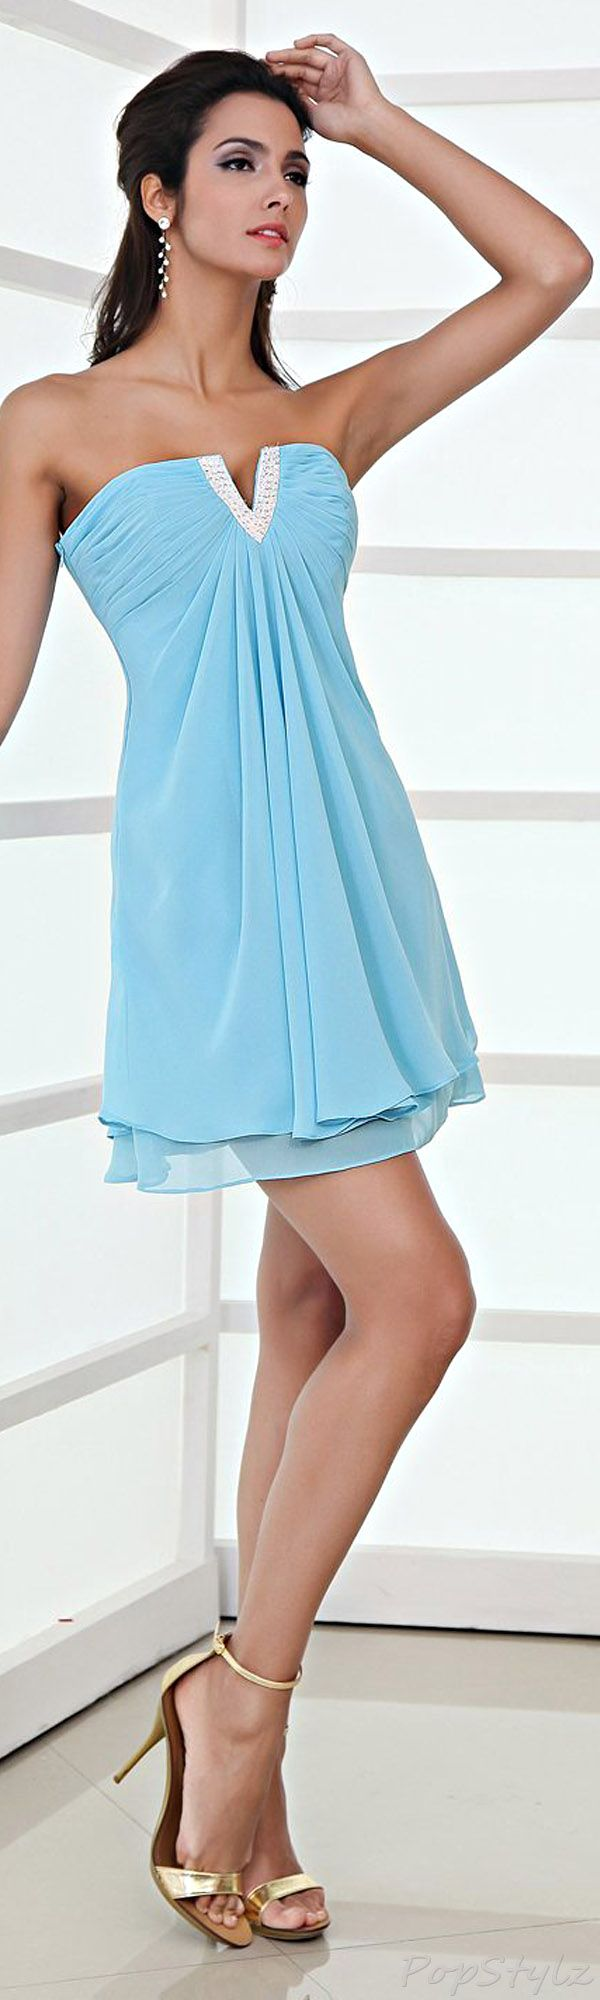 Honeystore Chiffon Short Dress | sai dresses 2 | Pinterest | Shorts ...